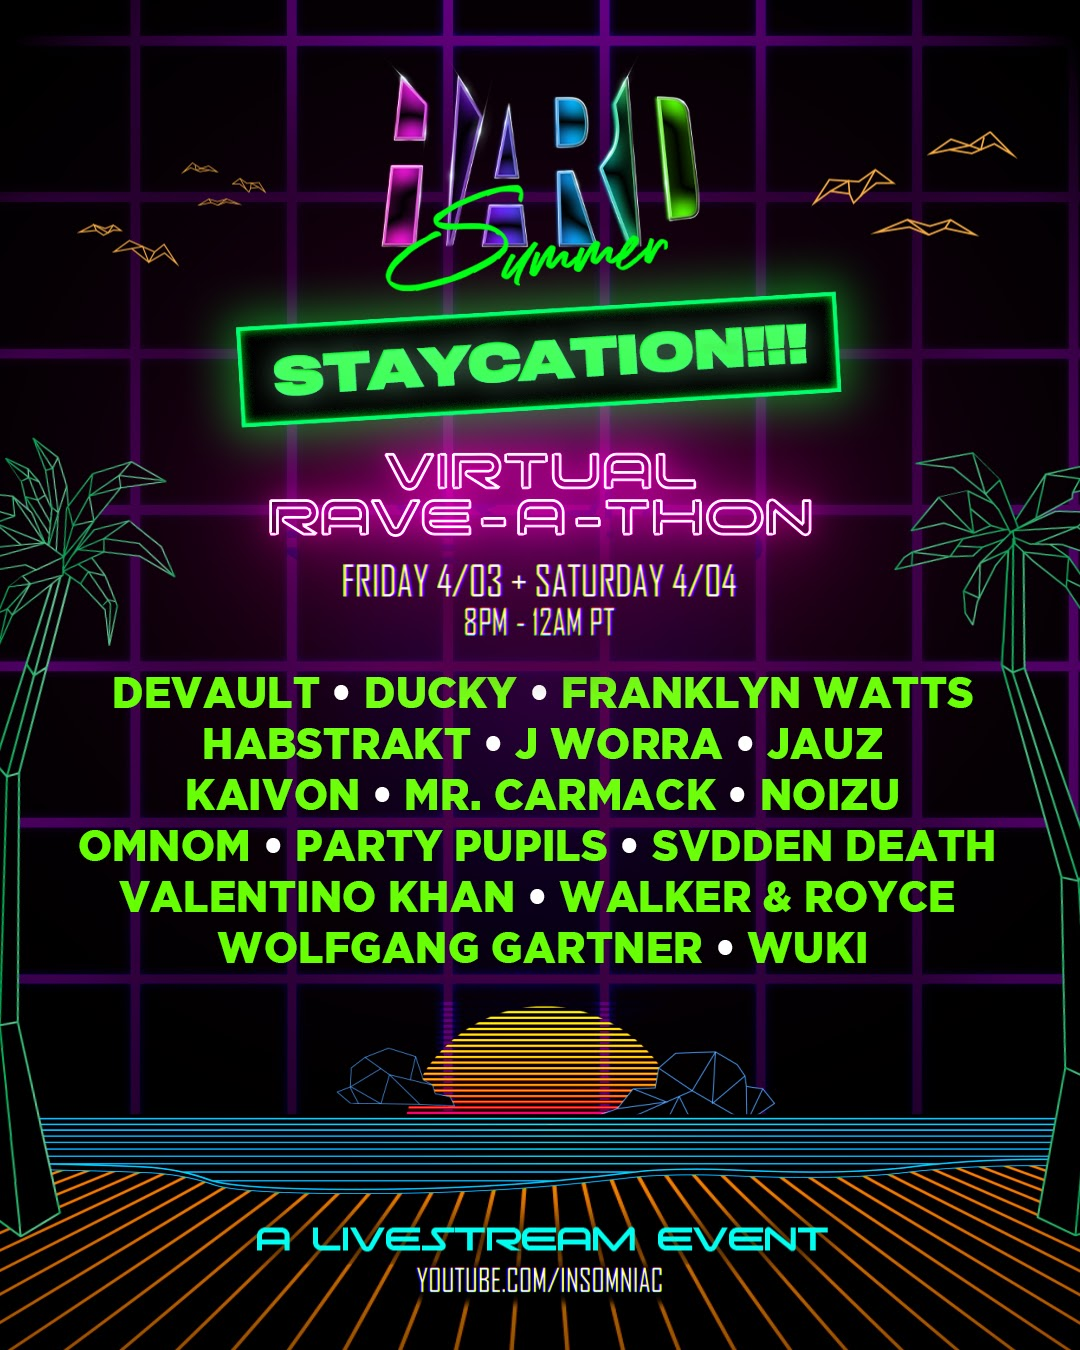 HARD Summer STAYCATION Virtual Rave-A-Thon Lineup